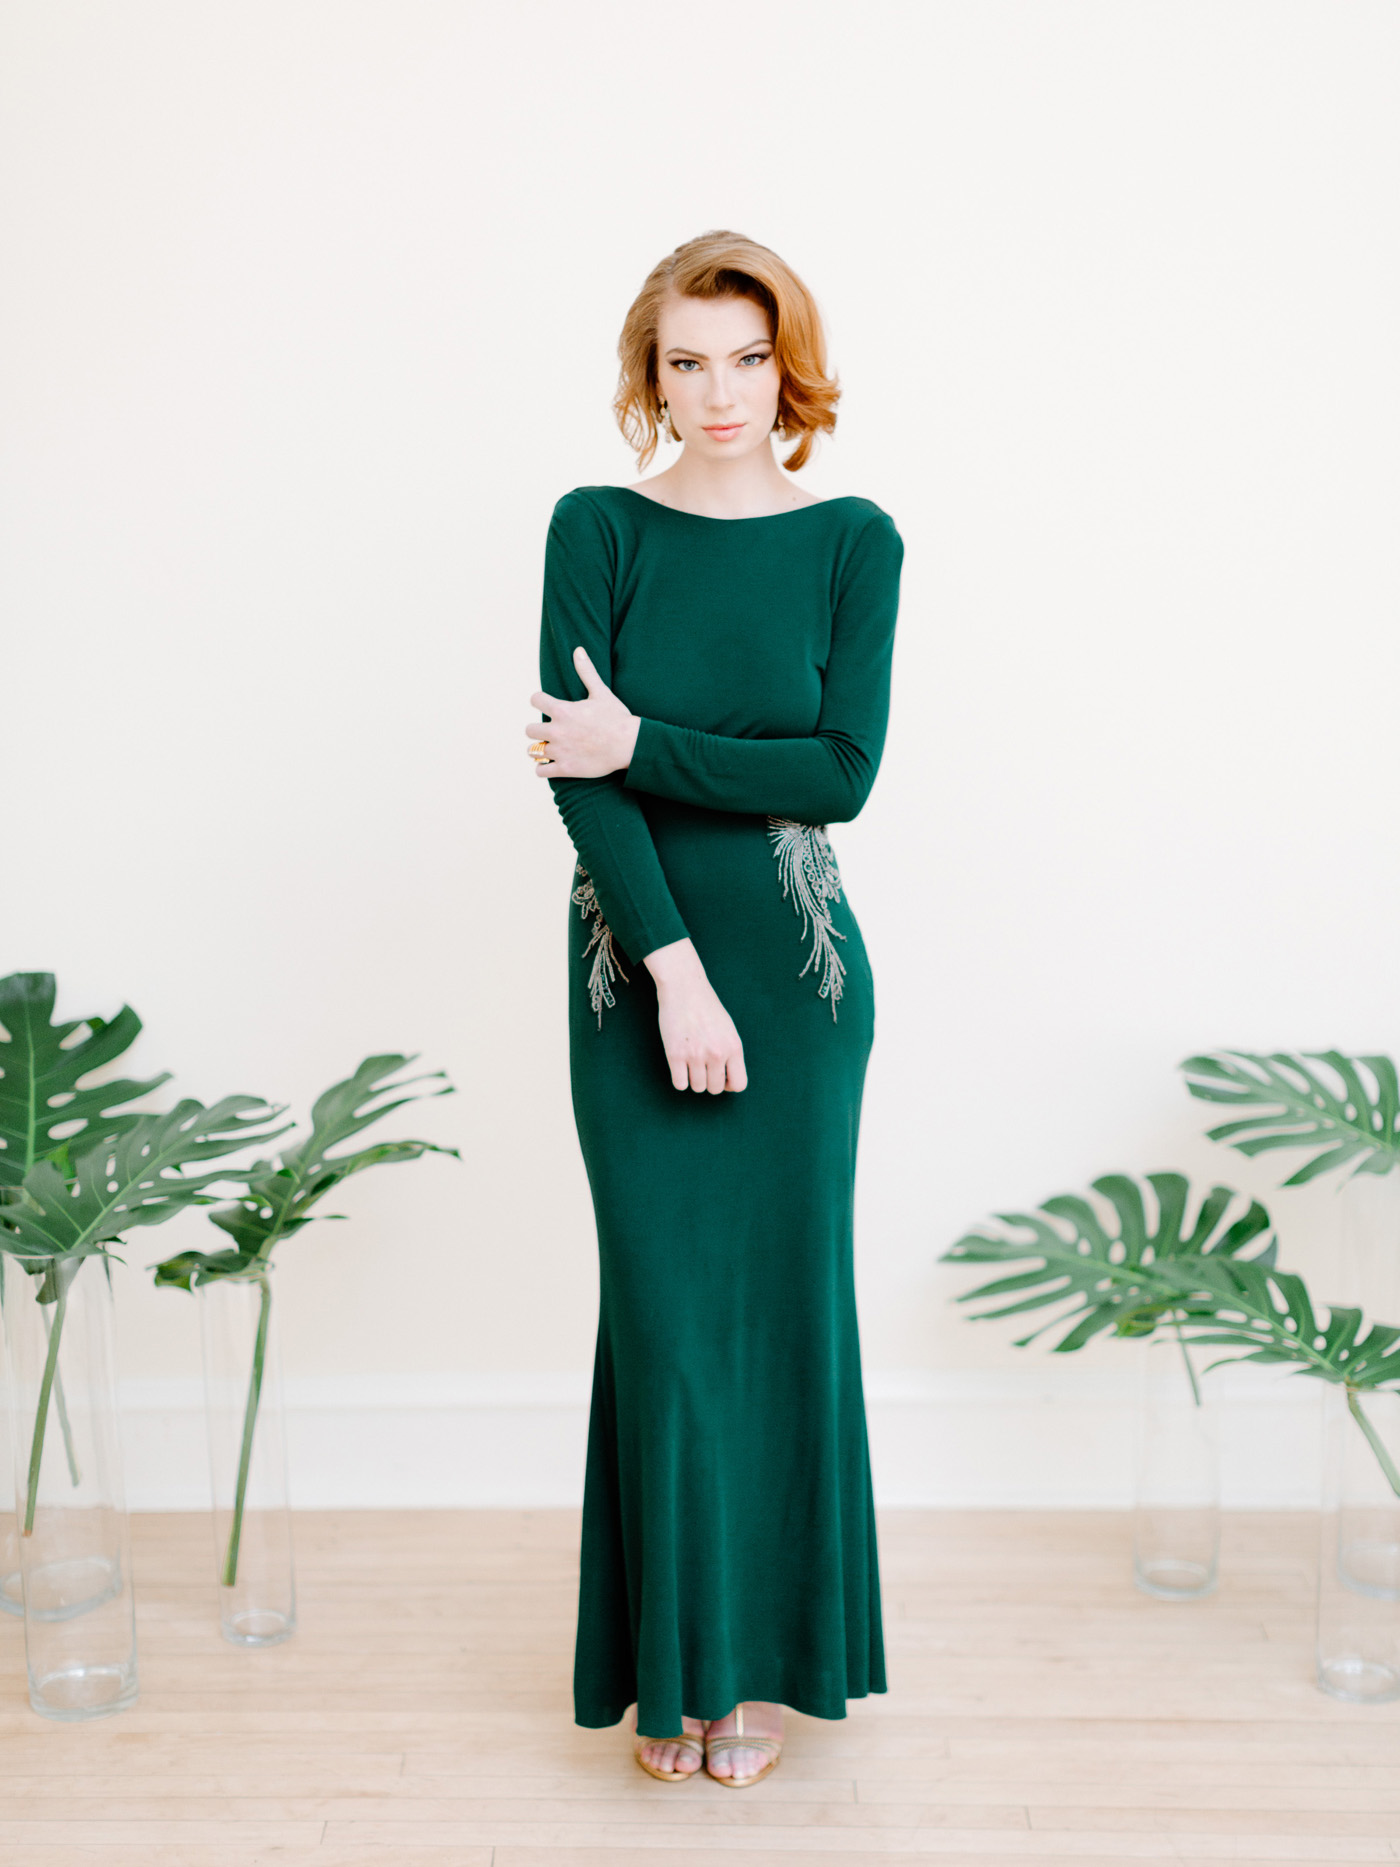 Art deco green wedding dress